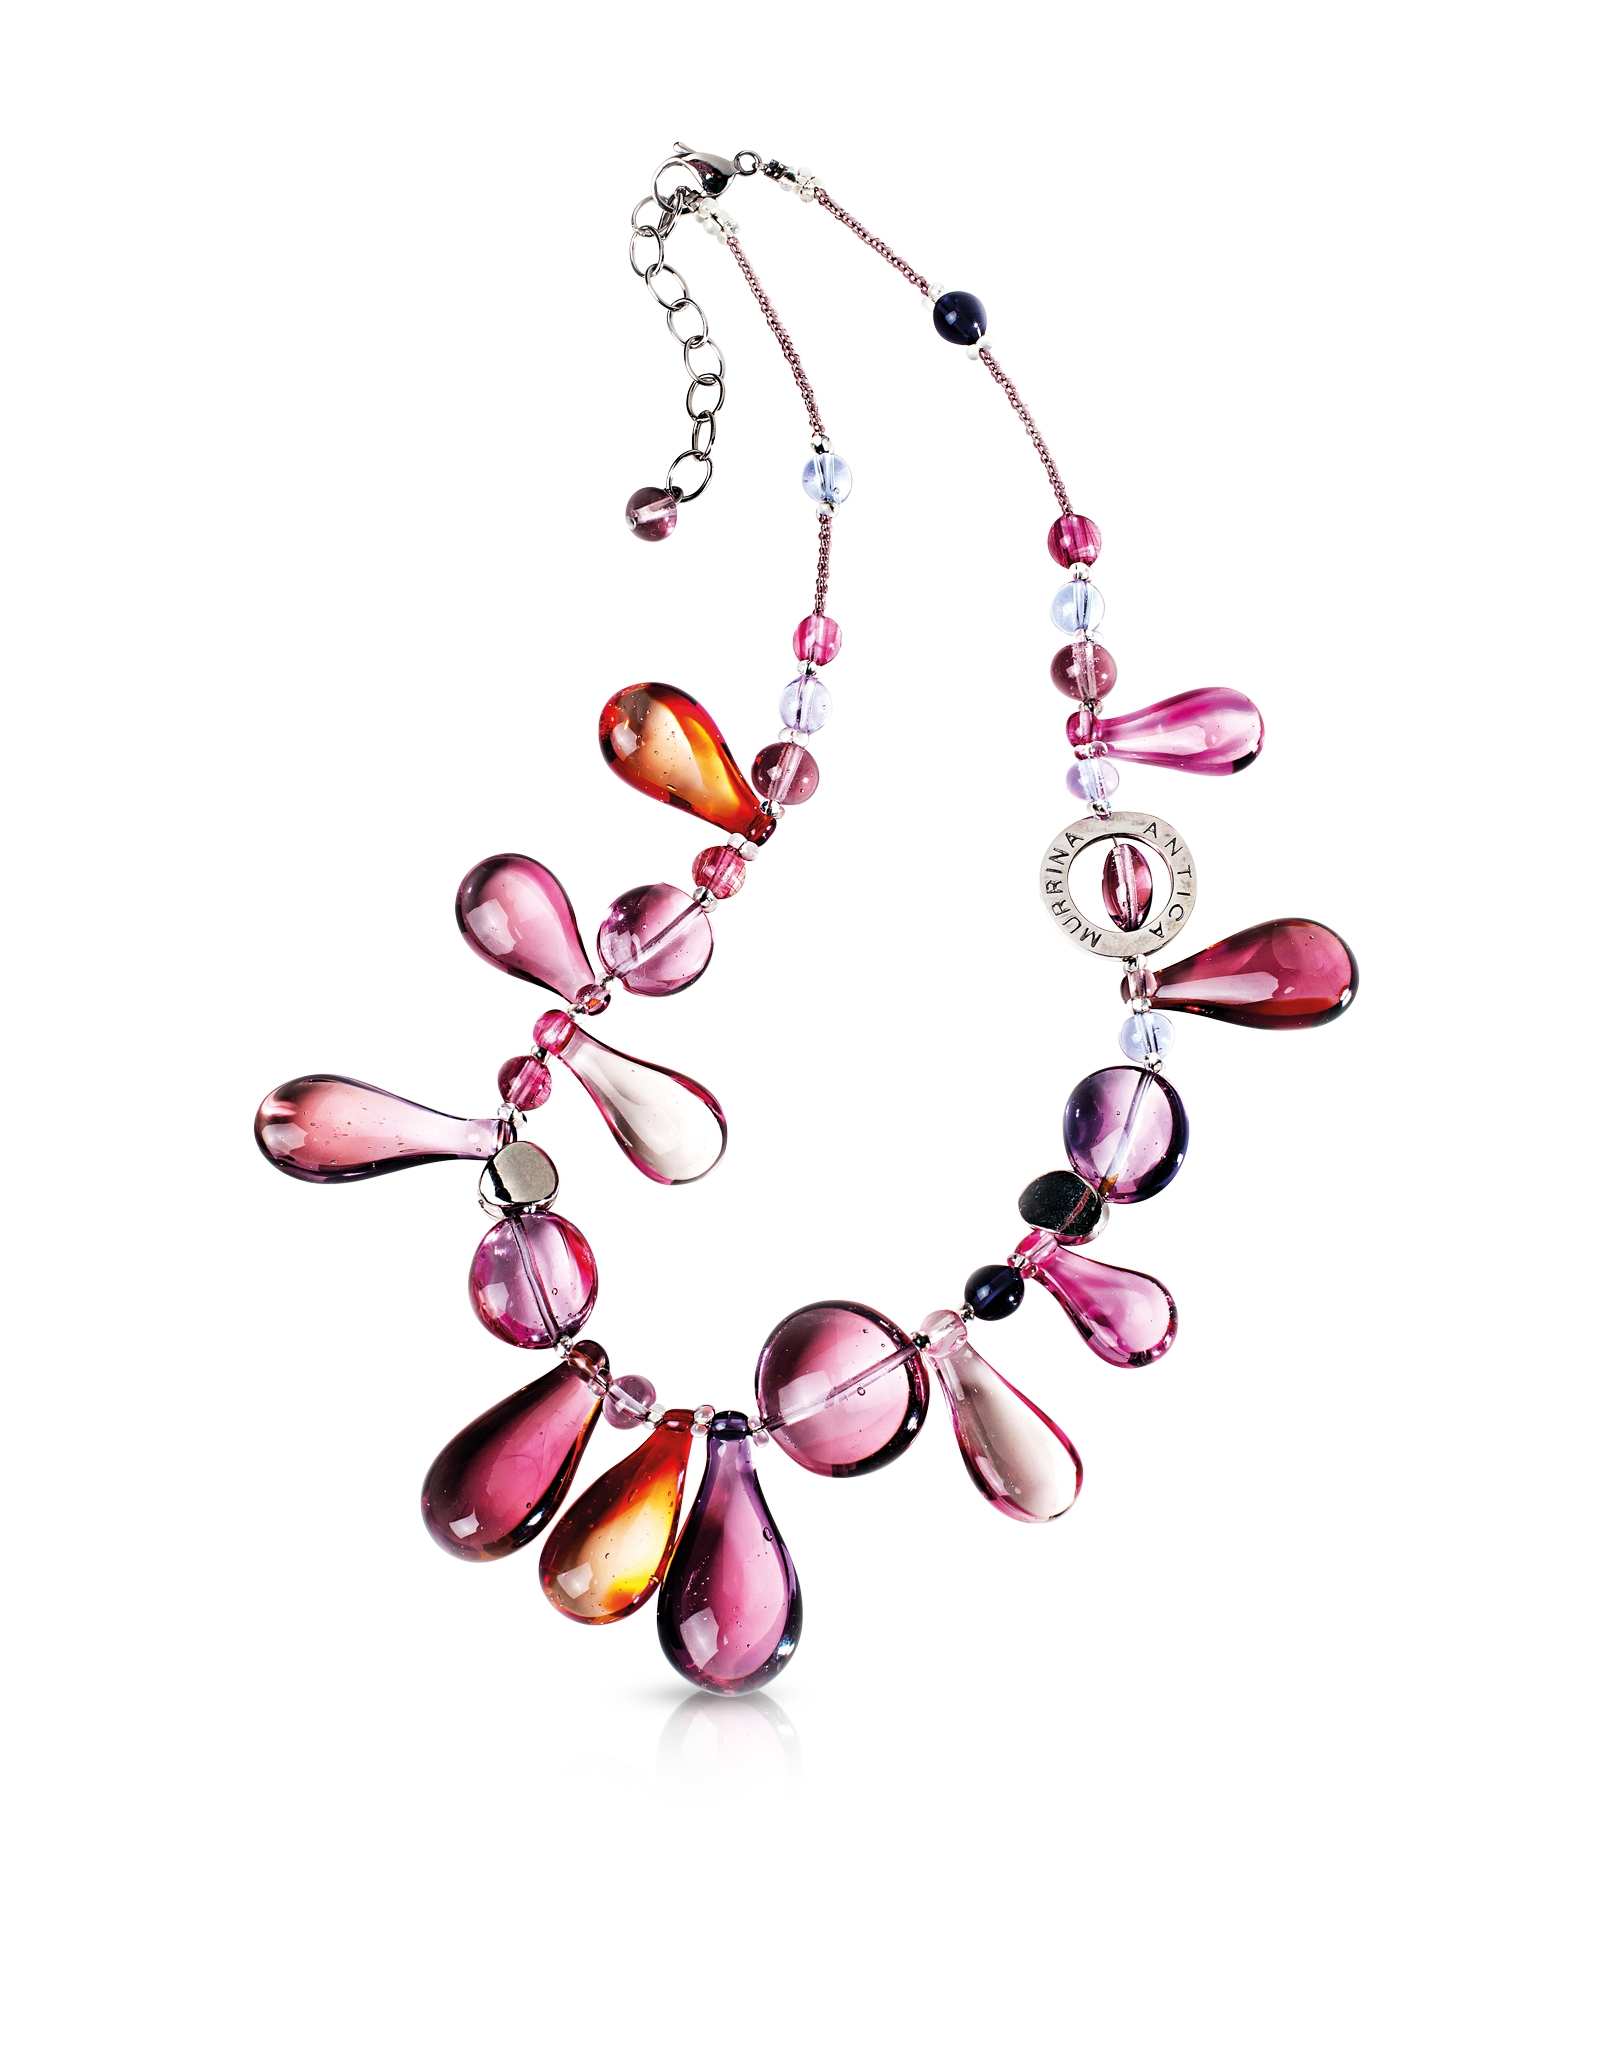 Lyst antica murrina lapilli murano glass necklace in pink gallery mozeypictures Choice Image